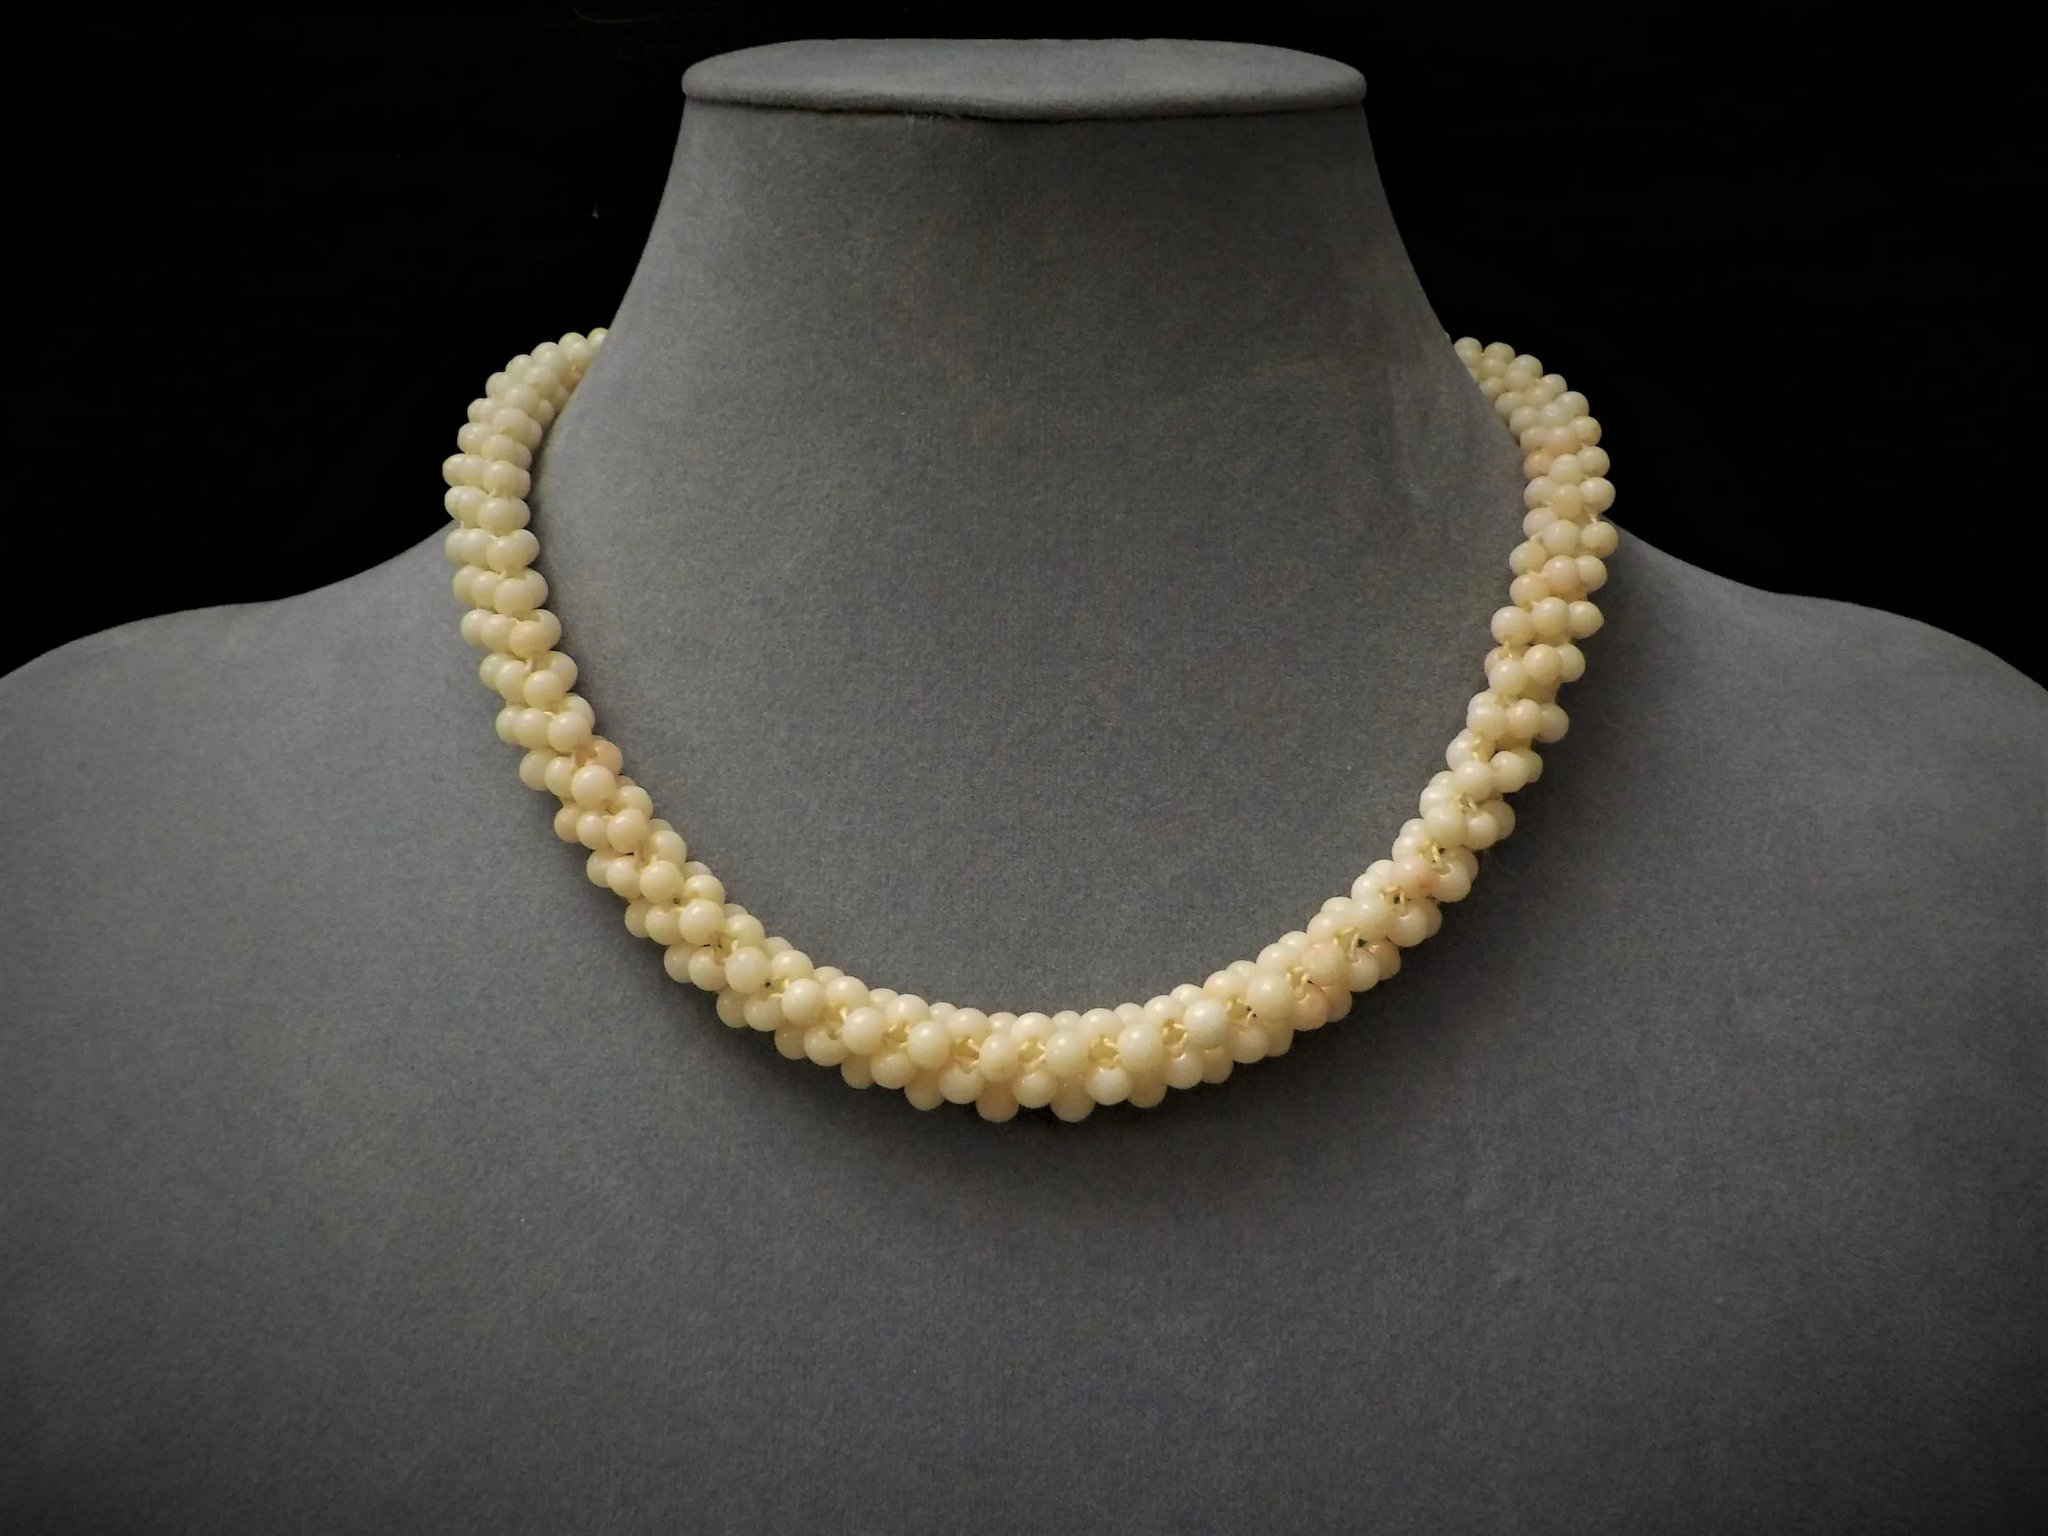 Vintage 1890 – 1940 Angel Skin Coral Woven Choker Necklace With Regard To Most Current Woven Fabric Choker Slider Necklaces (View 23 of 25)